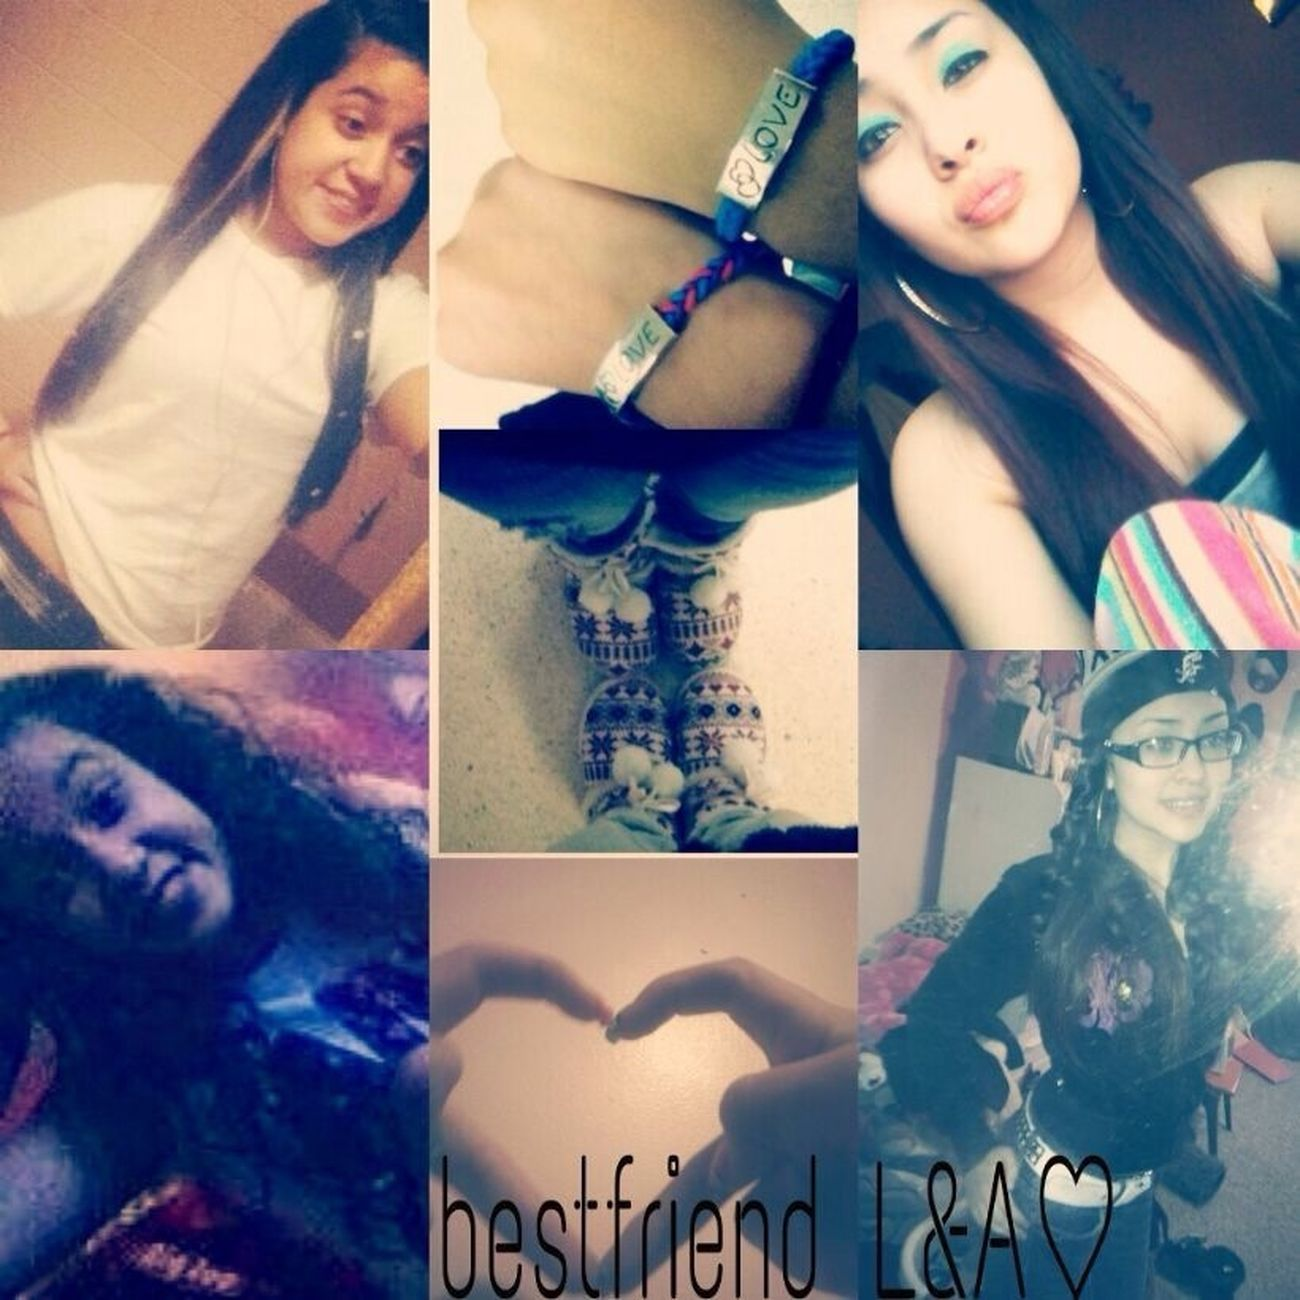 Me & My BESTfriend . I Love Her , She's My Other Half & Sister   . A & L  . Follow Us On Instagram @Ashleey_Virginia & @_Lightitup15_